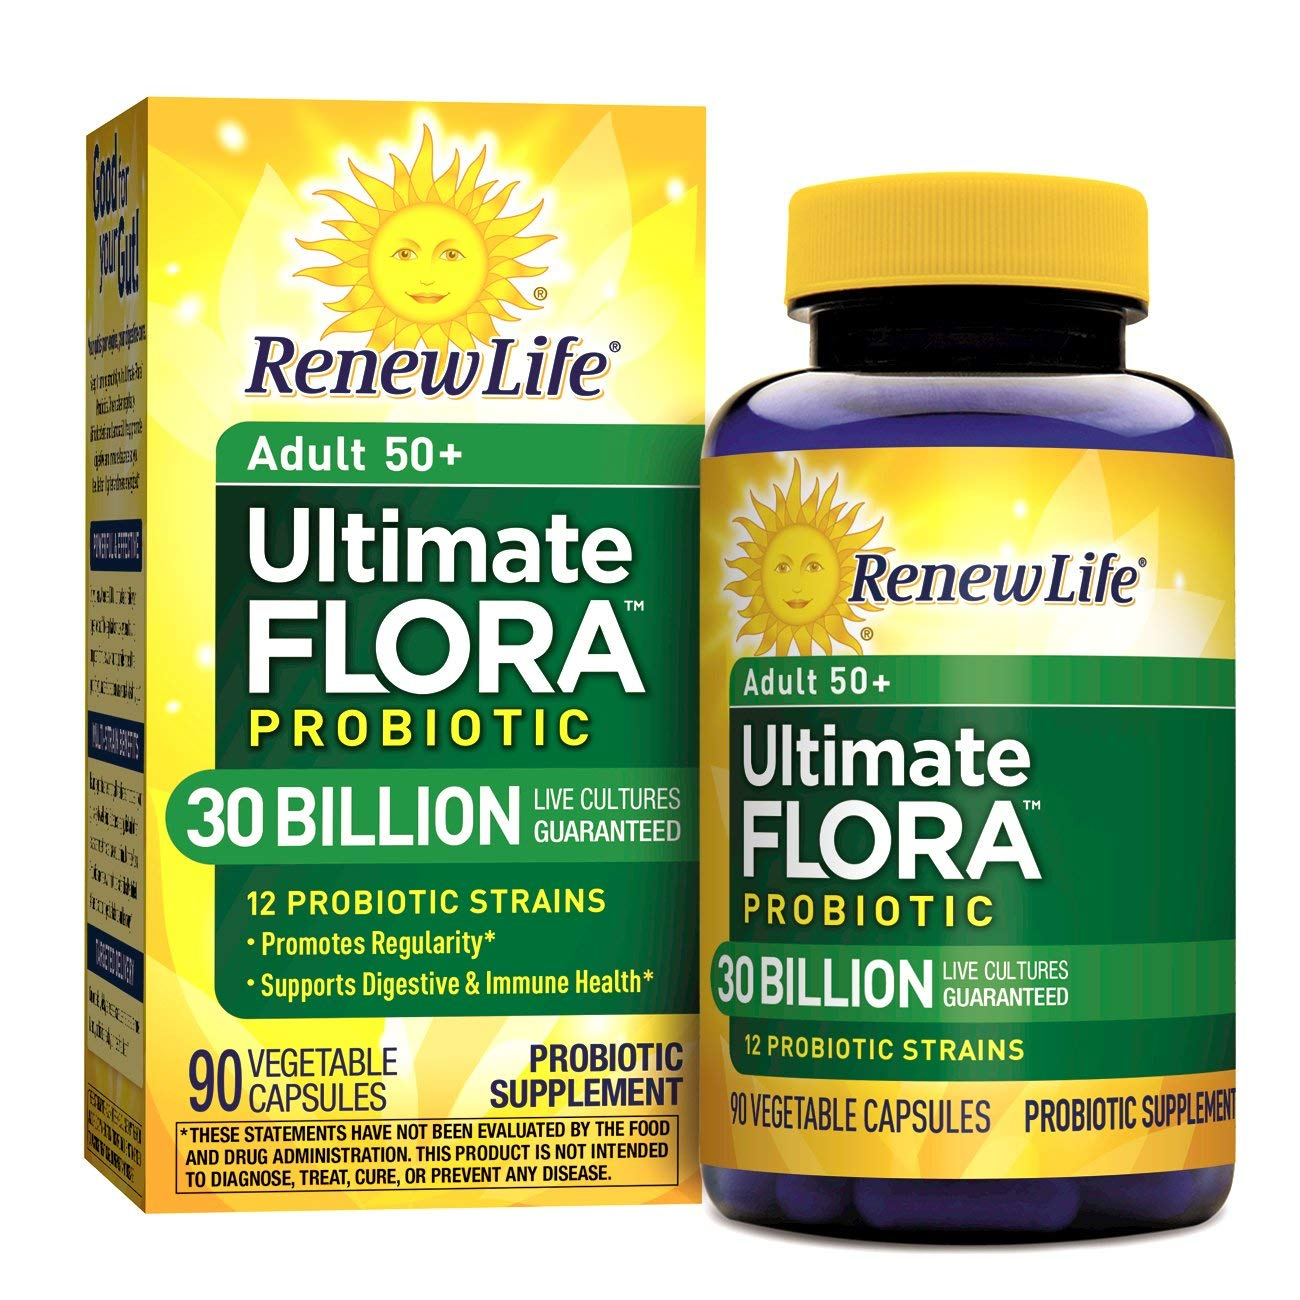 Renew Life Adult 50+ Probiotic - Ultimate Flora Probiotic, Shelf Stable Probiotic Supplement - 30 Billion - 90 Vegetables Capsules (Packaging May Vary)